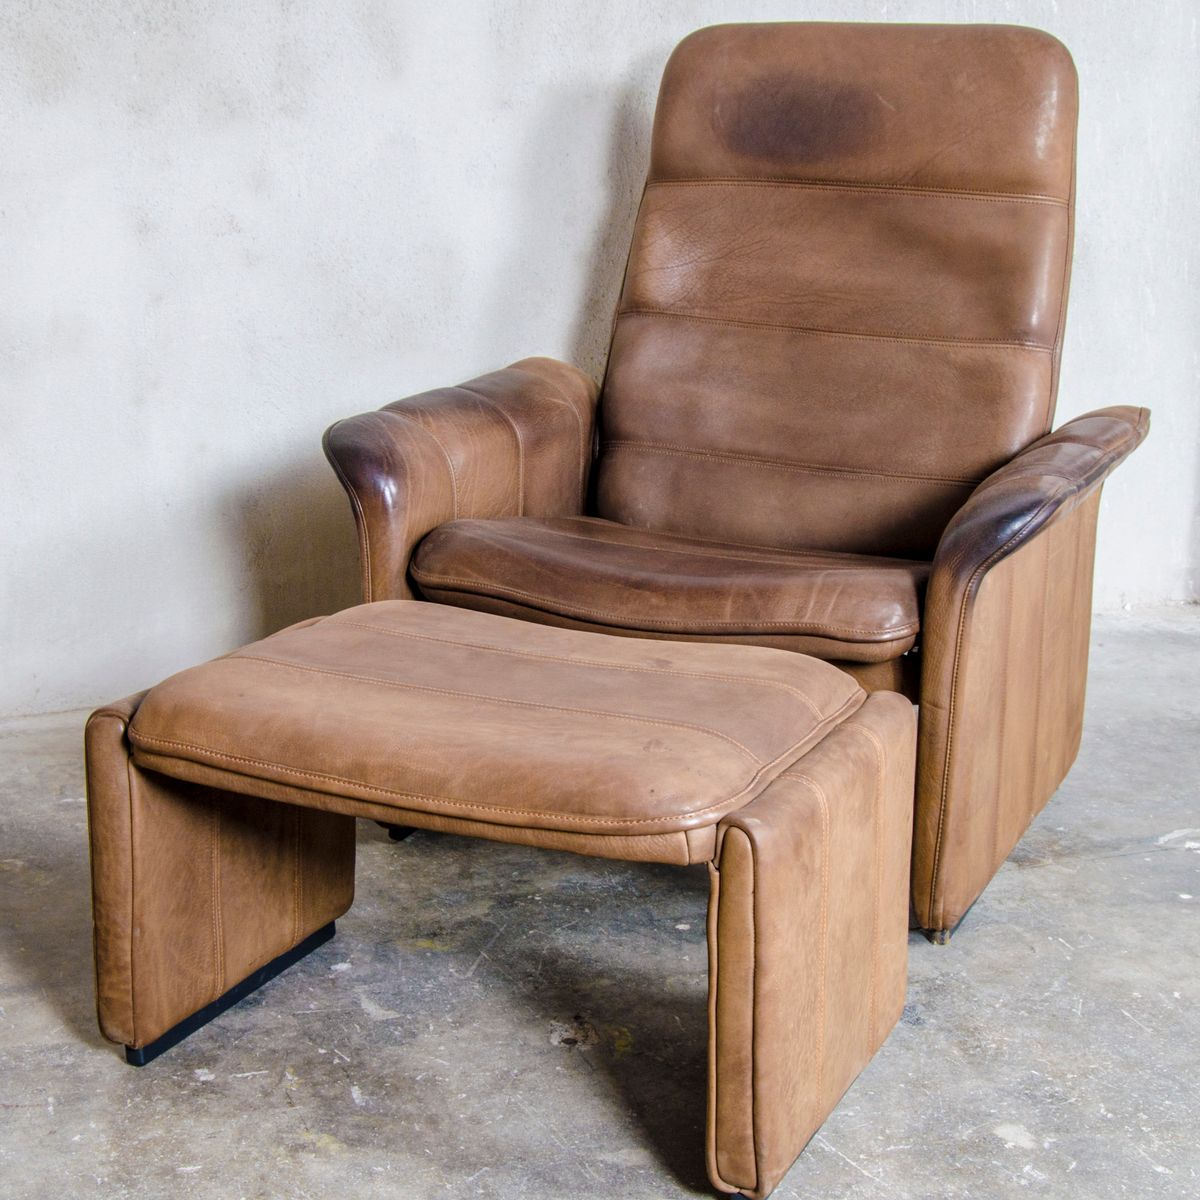 Lounge Chair With Ottoman Ds 50 Reclining Lounge Chair With Ottoman From De Sede